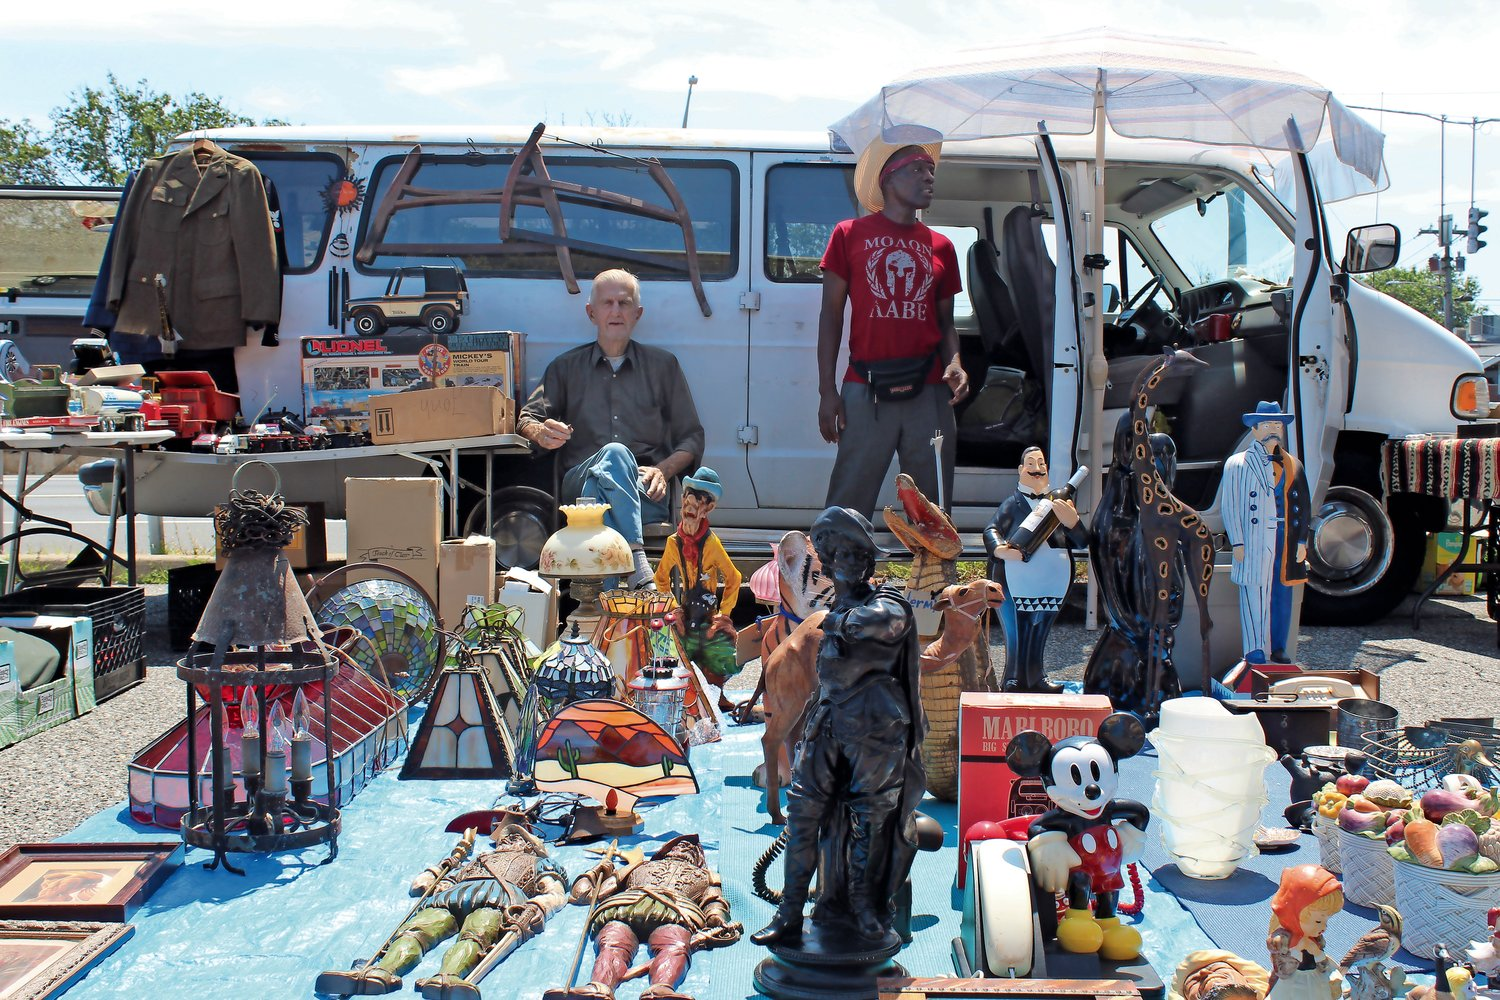 Lou Prantmeyer, left, and Kenneth Line, of Amityville, sold a wide variety of valuables at the flea market, including picture frames, statuettes, toys, stained-glass lampshades and more.